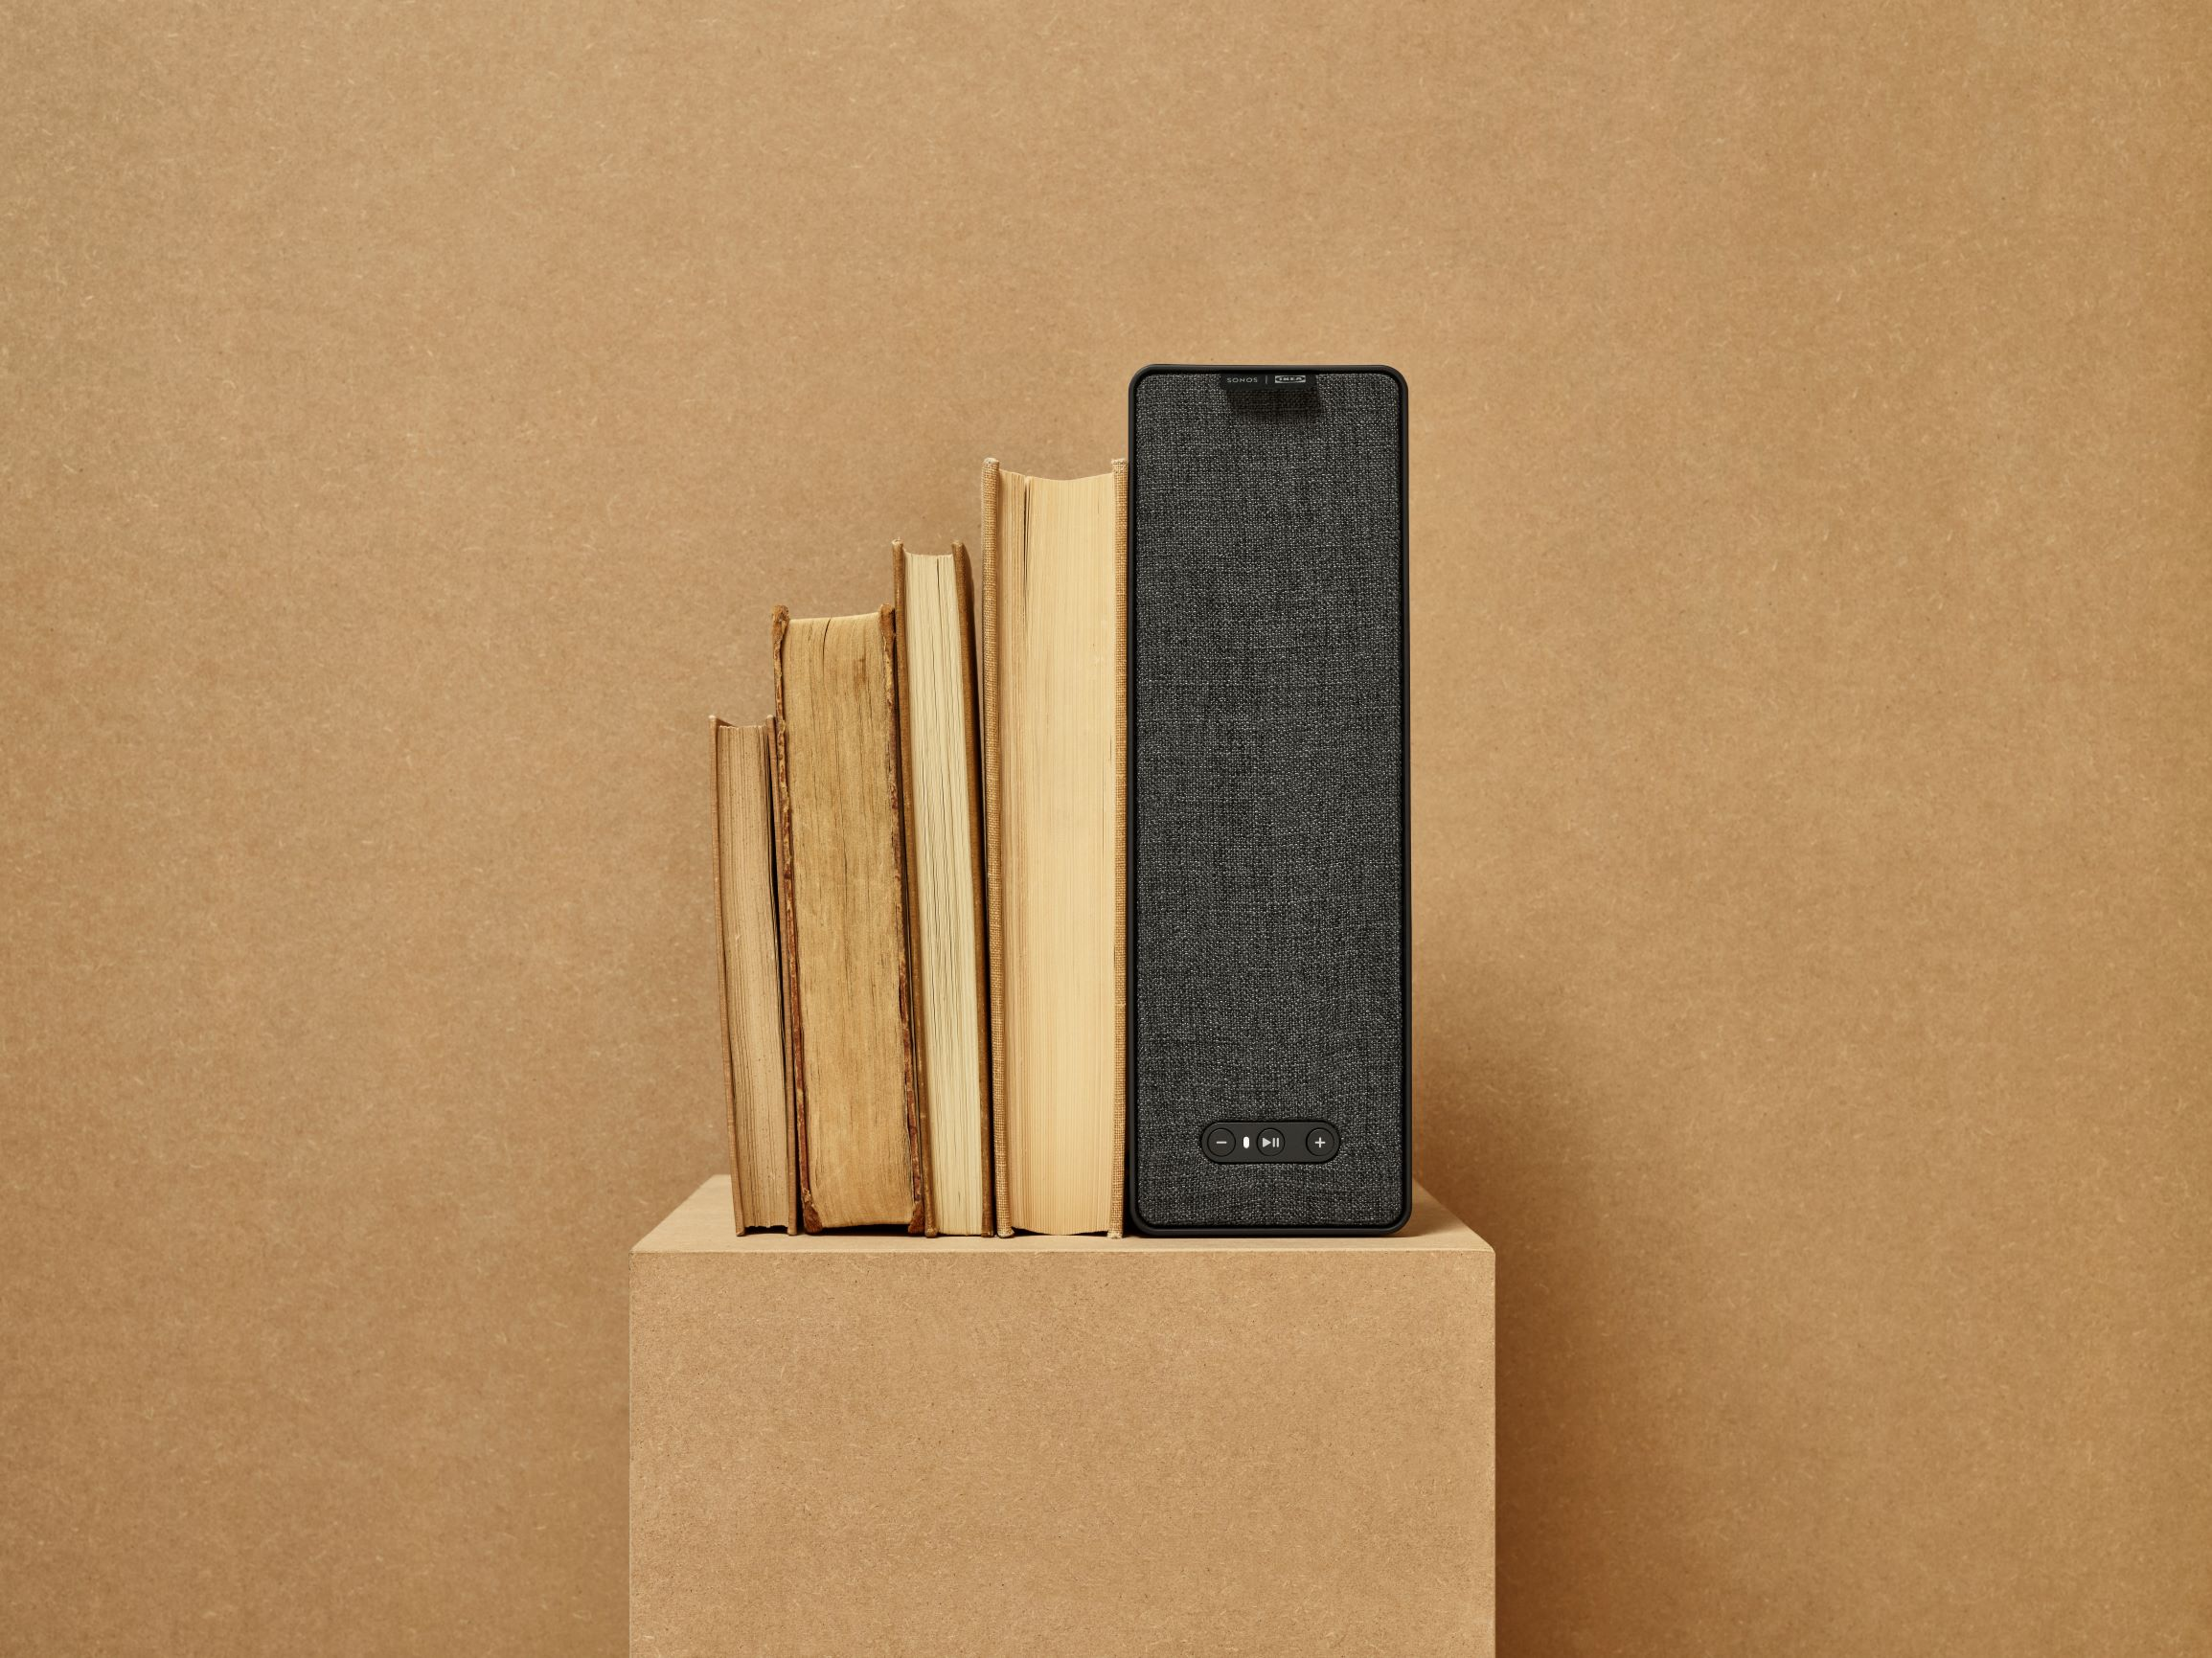 The SYMFONISK bookshelf speaker (Black),   £99